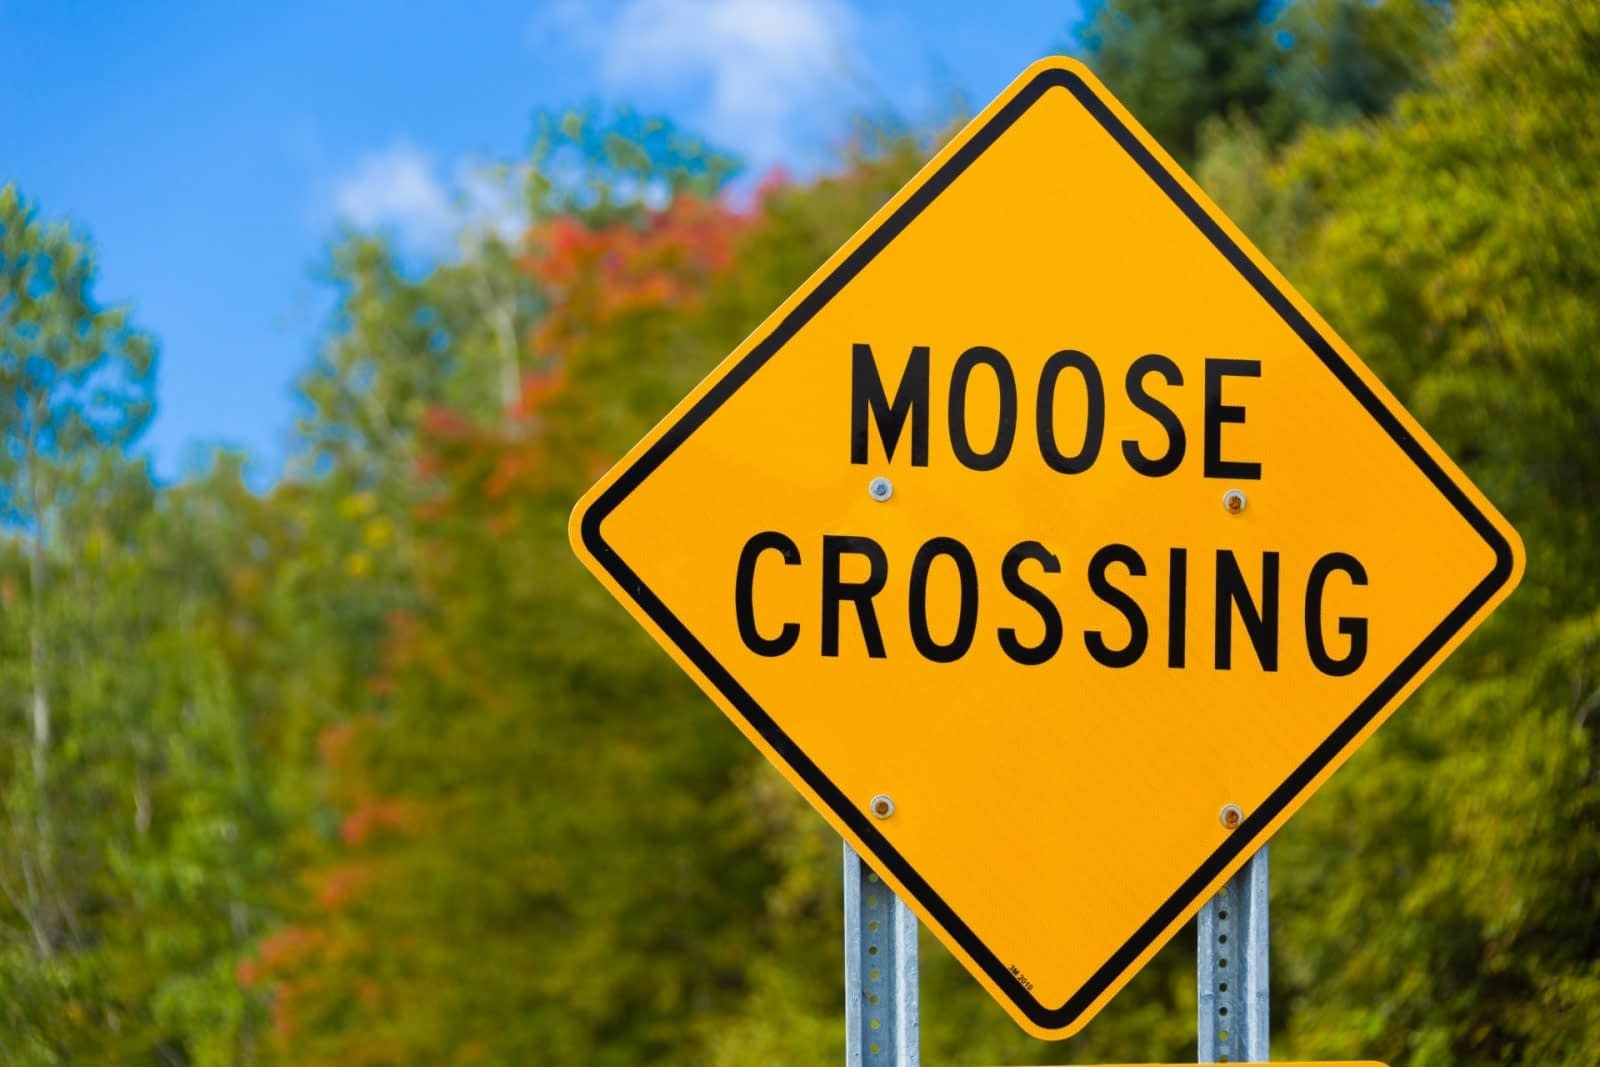 SPOTTING A MOOSE IN MAINE